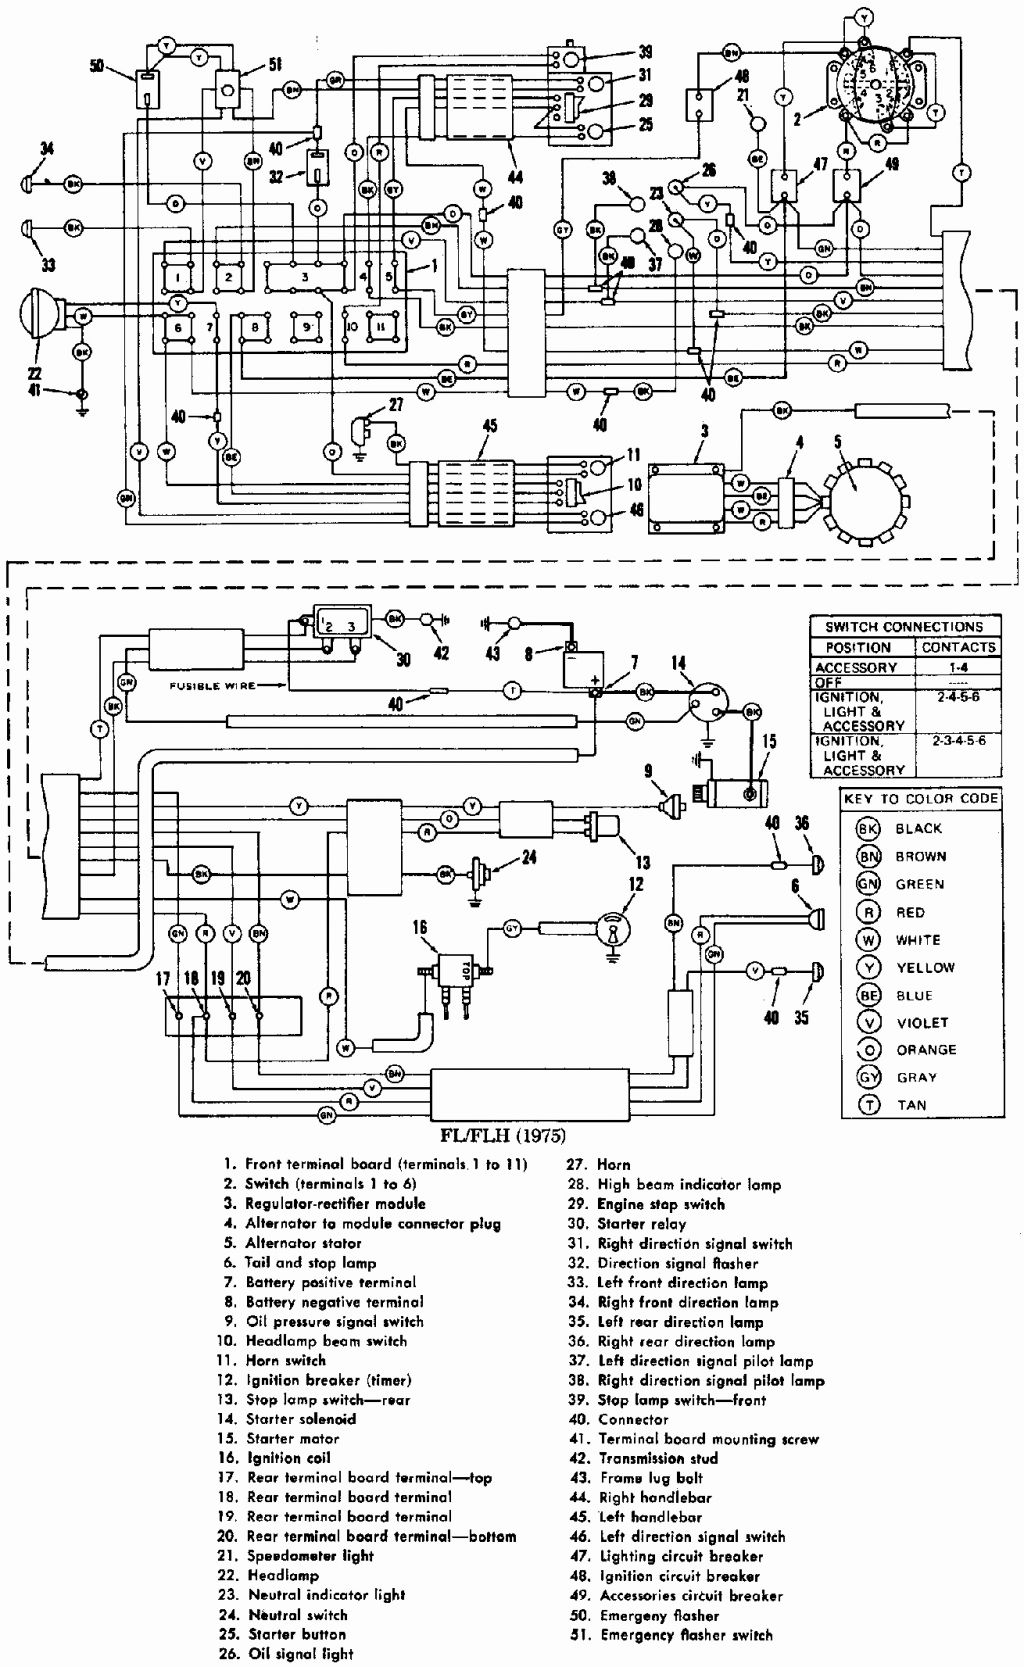 1966 Harley Davidson Wiring Diagram | Wiring Diagram on